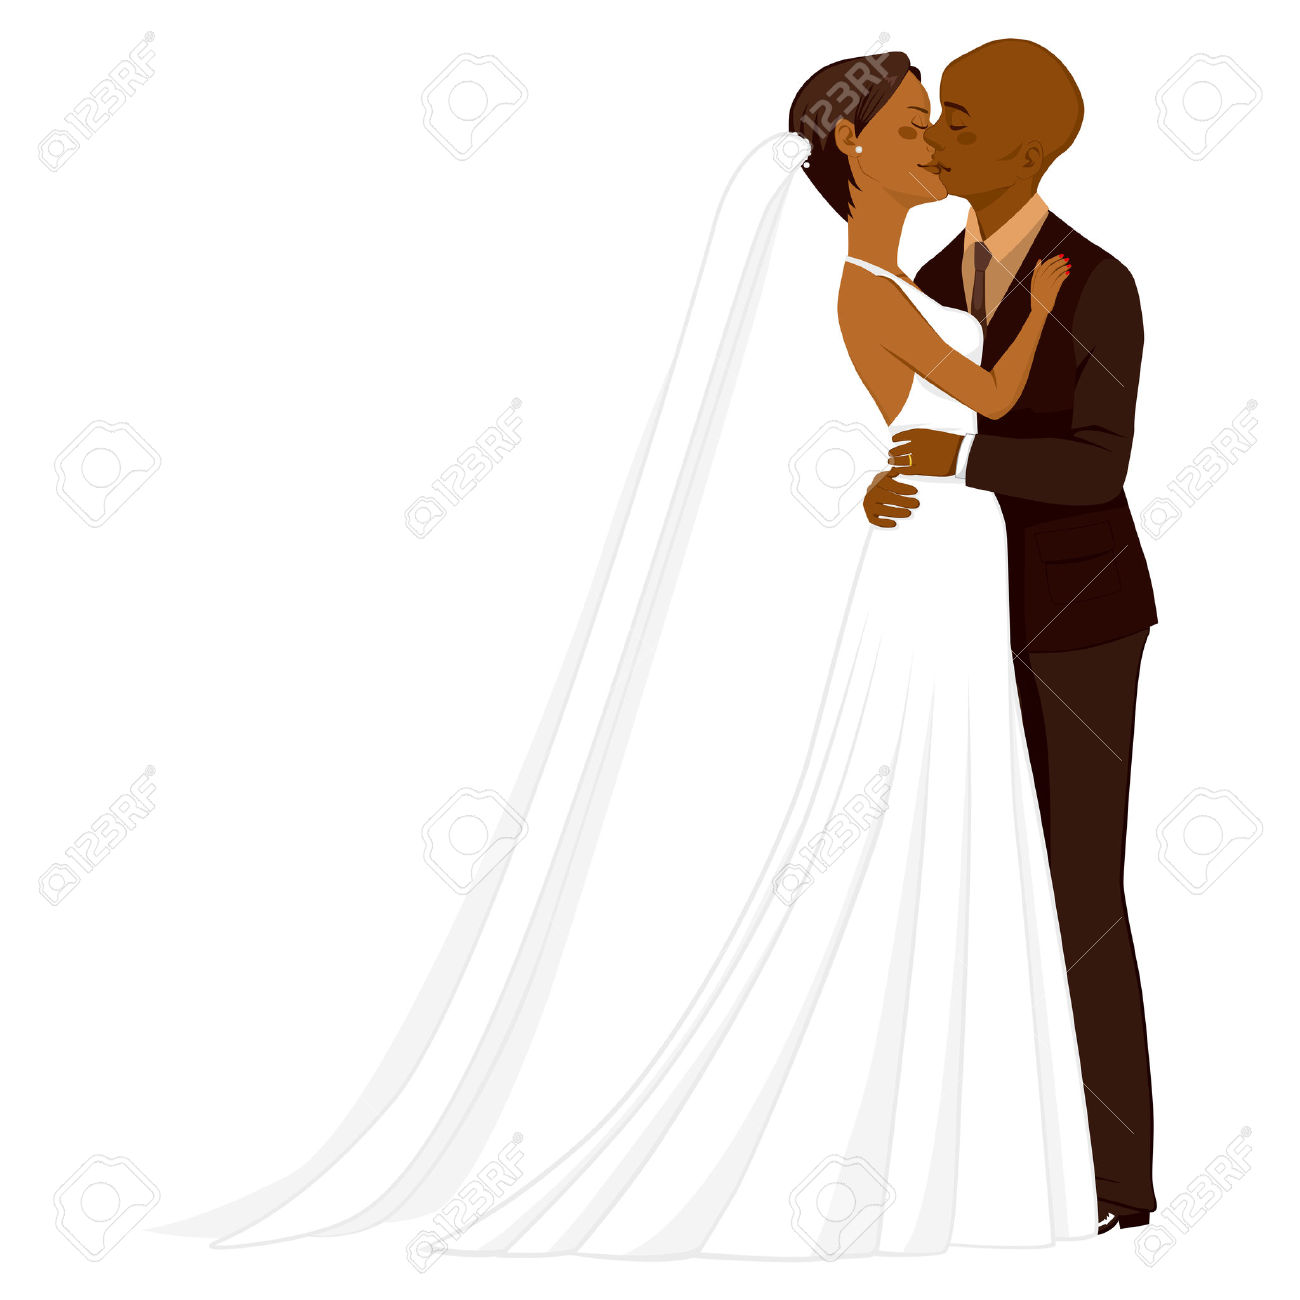 525 African American Couple Cliparts, Stock Vector And Royalty.